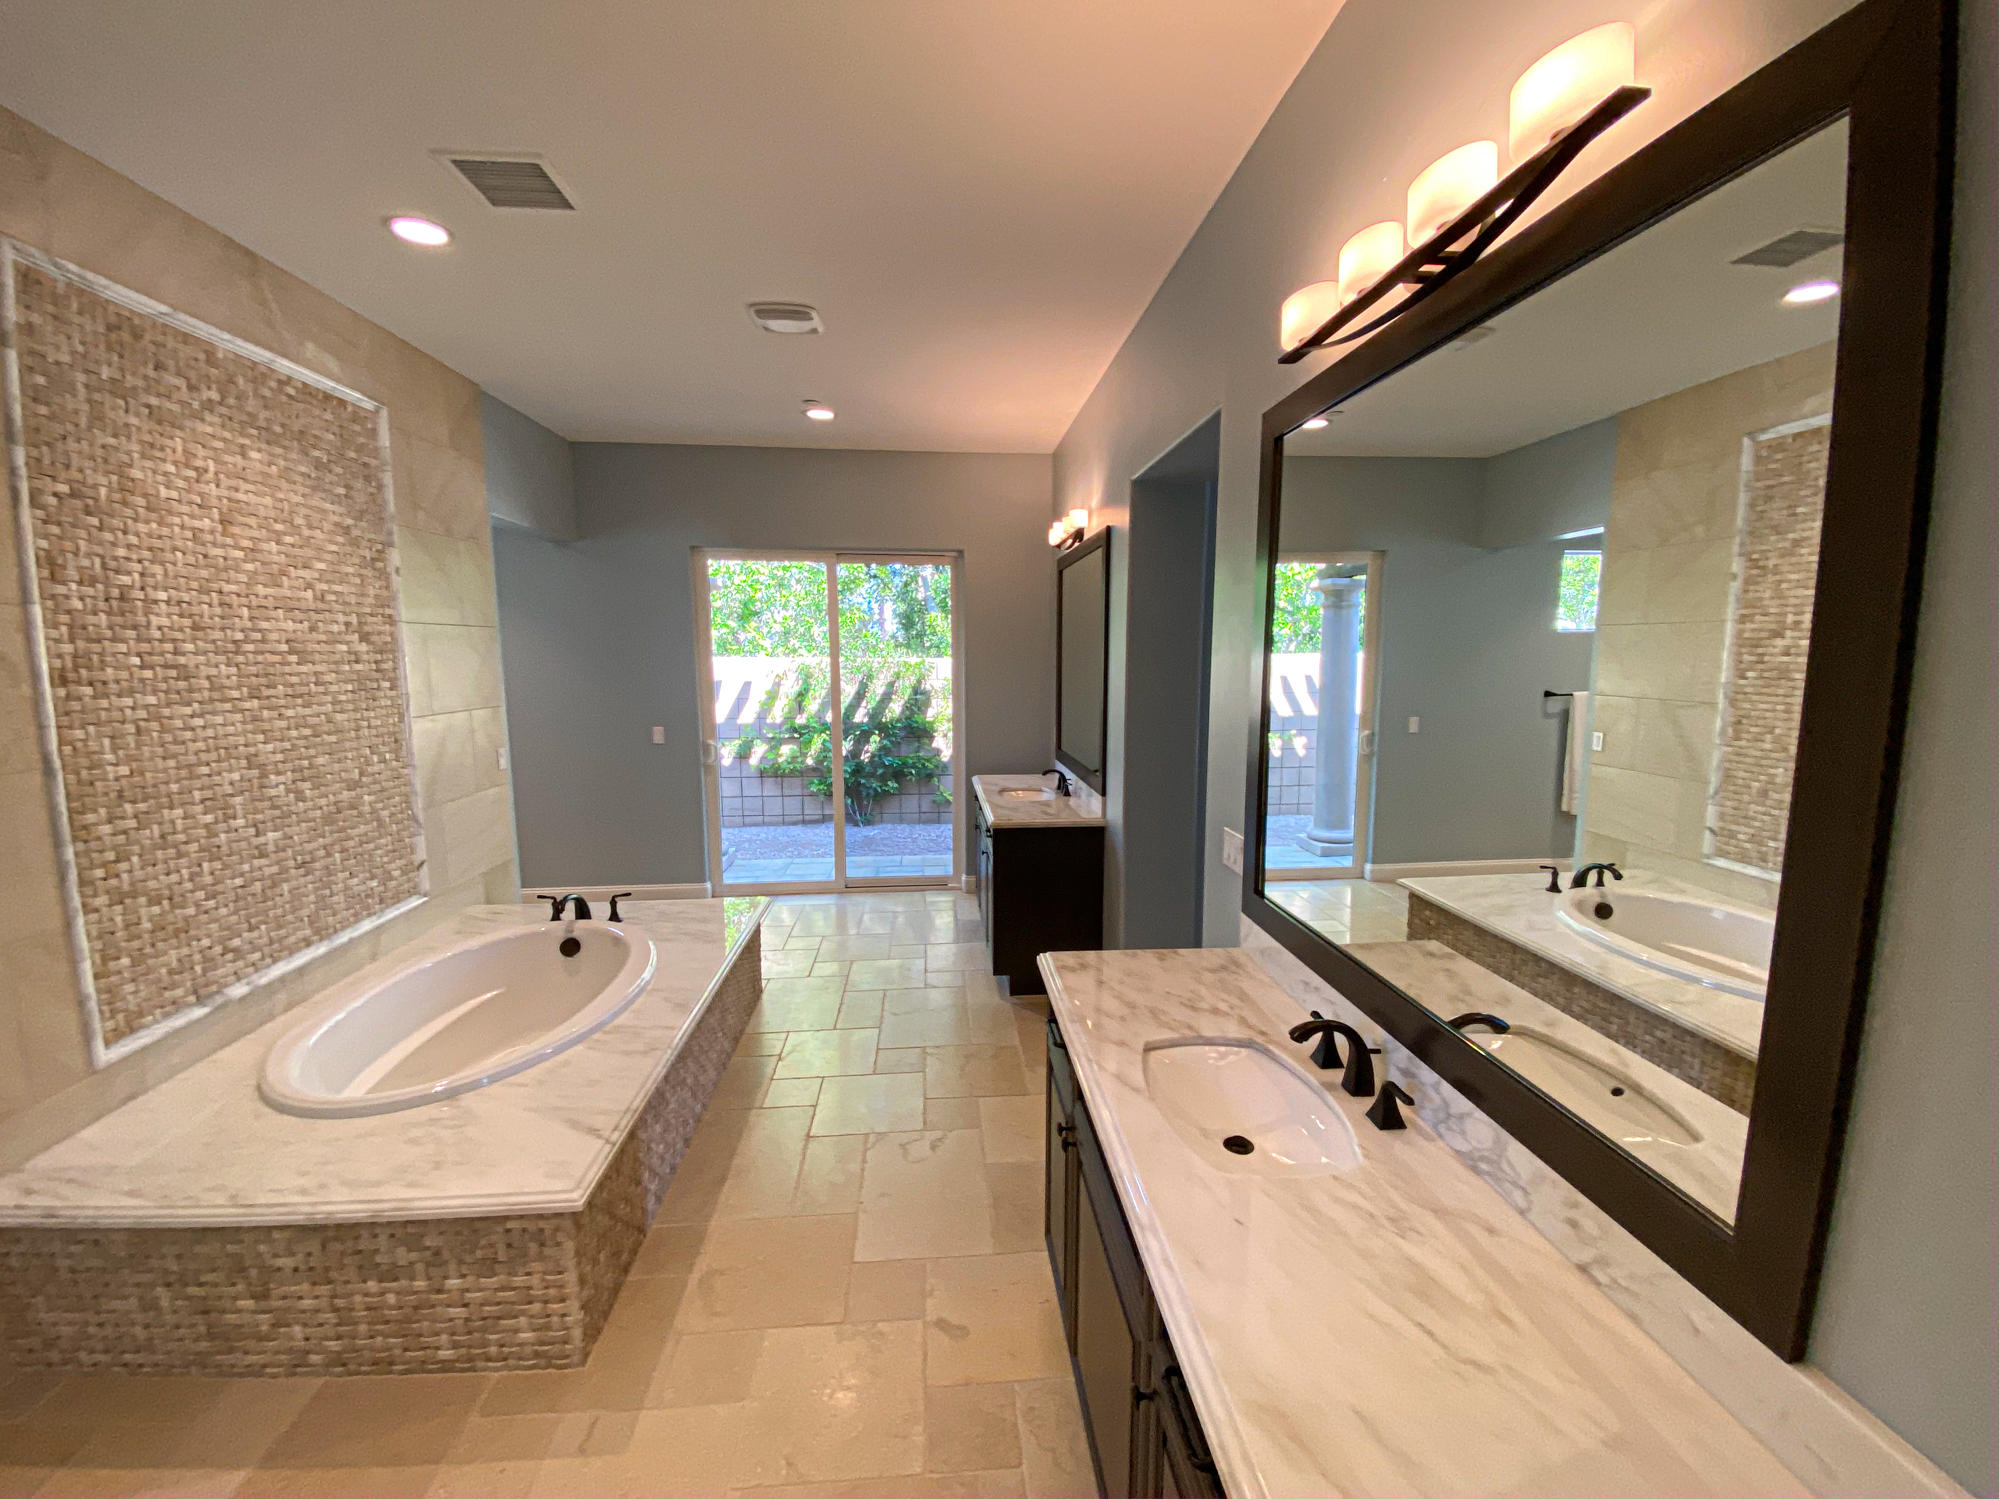 17 Emerald Court, Rancho Mirage, California 92270, 3 Bedrooms Bedrooms, ,4 BathroomsBathrooms,Residential,For Sale,17 Emerald Court,219041595